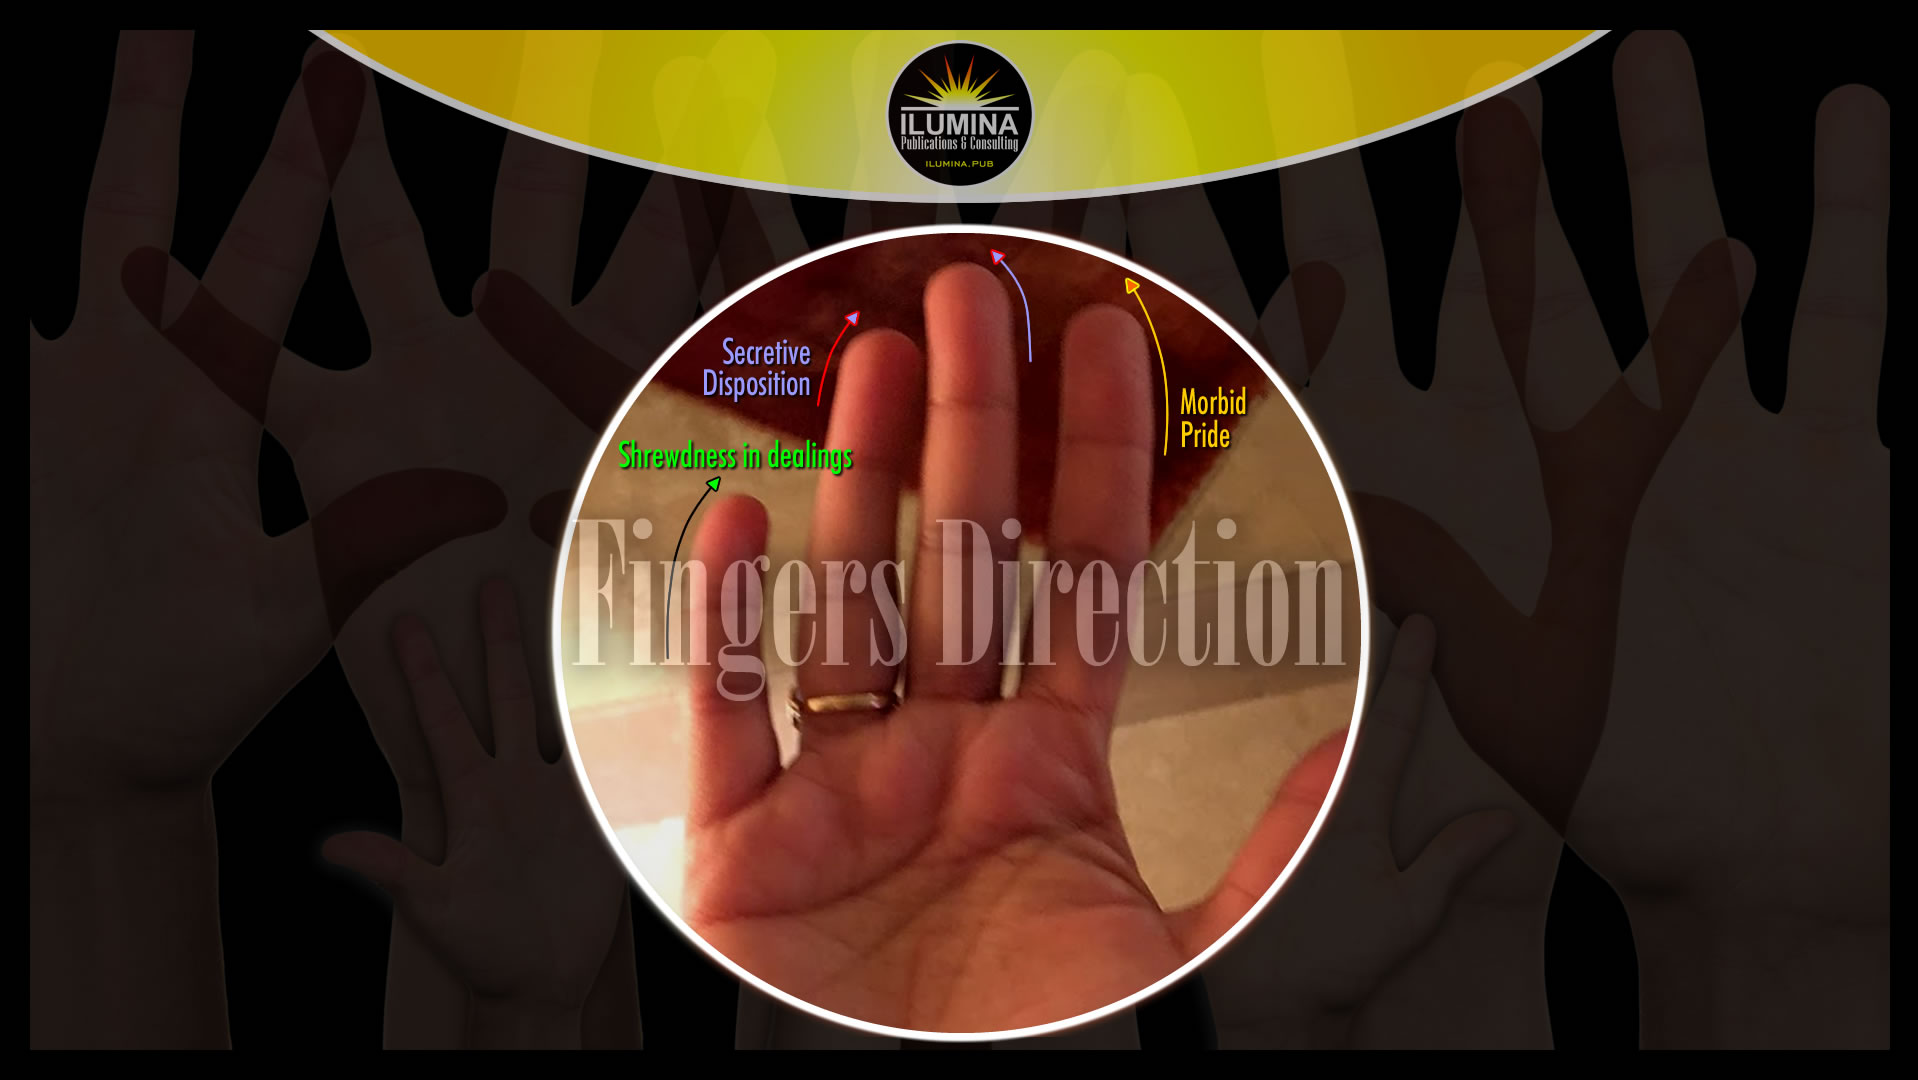 Fingers' Direction